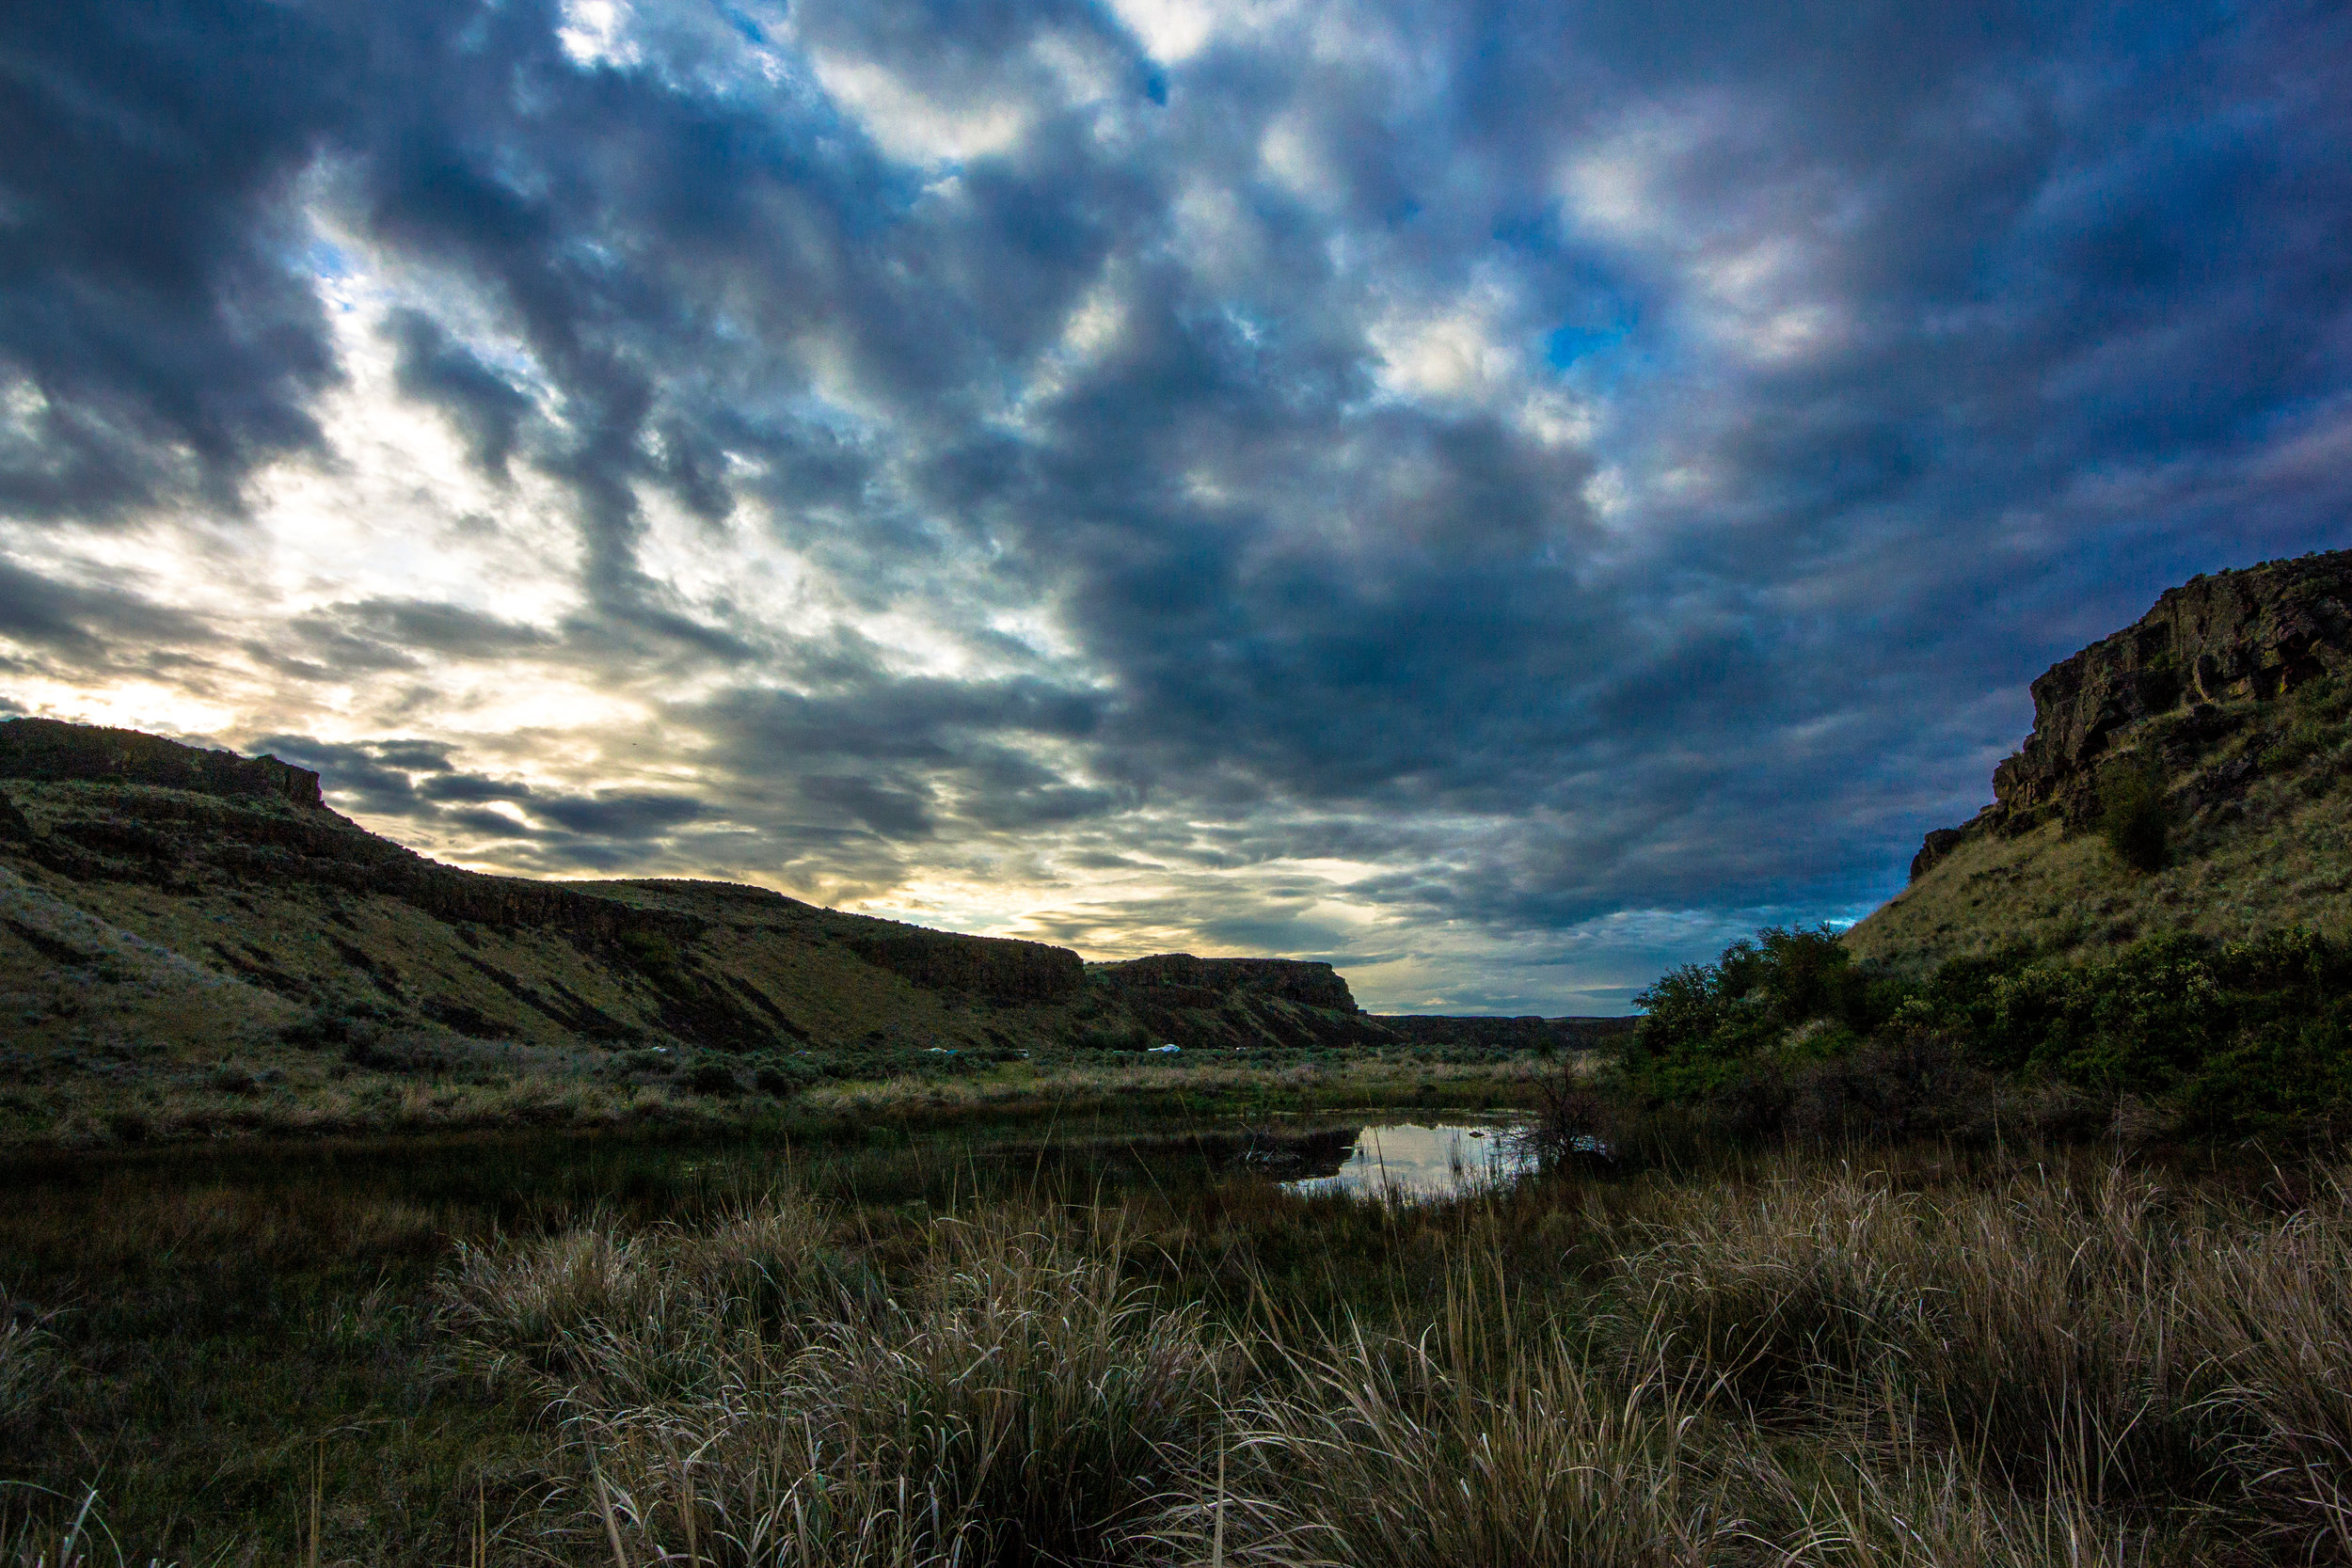 2018 - Evening in the Coulee